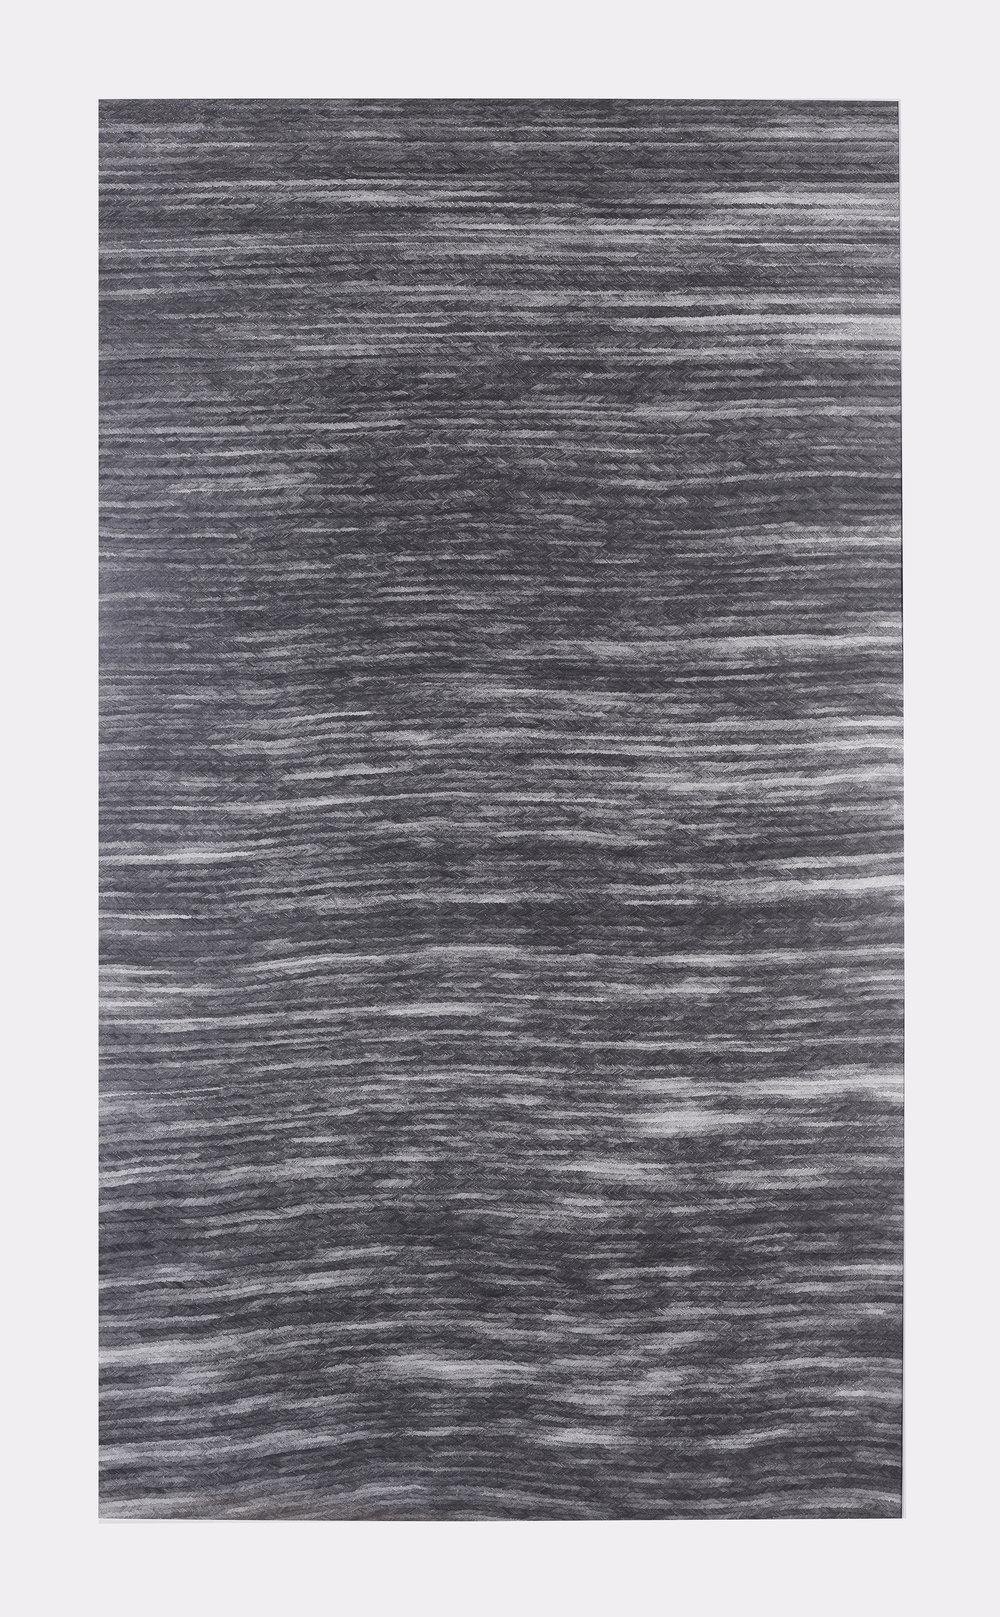 Woven Graphite on paper